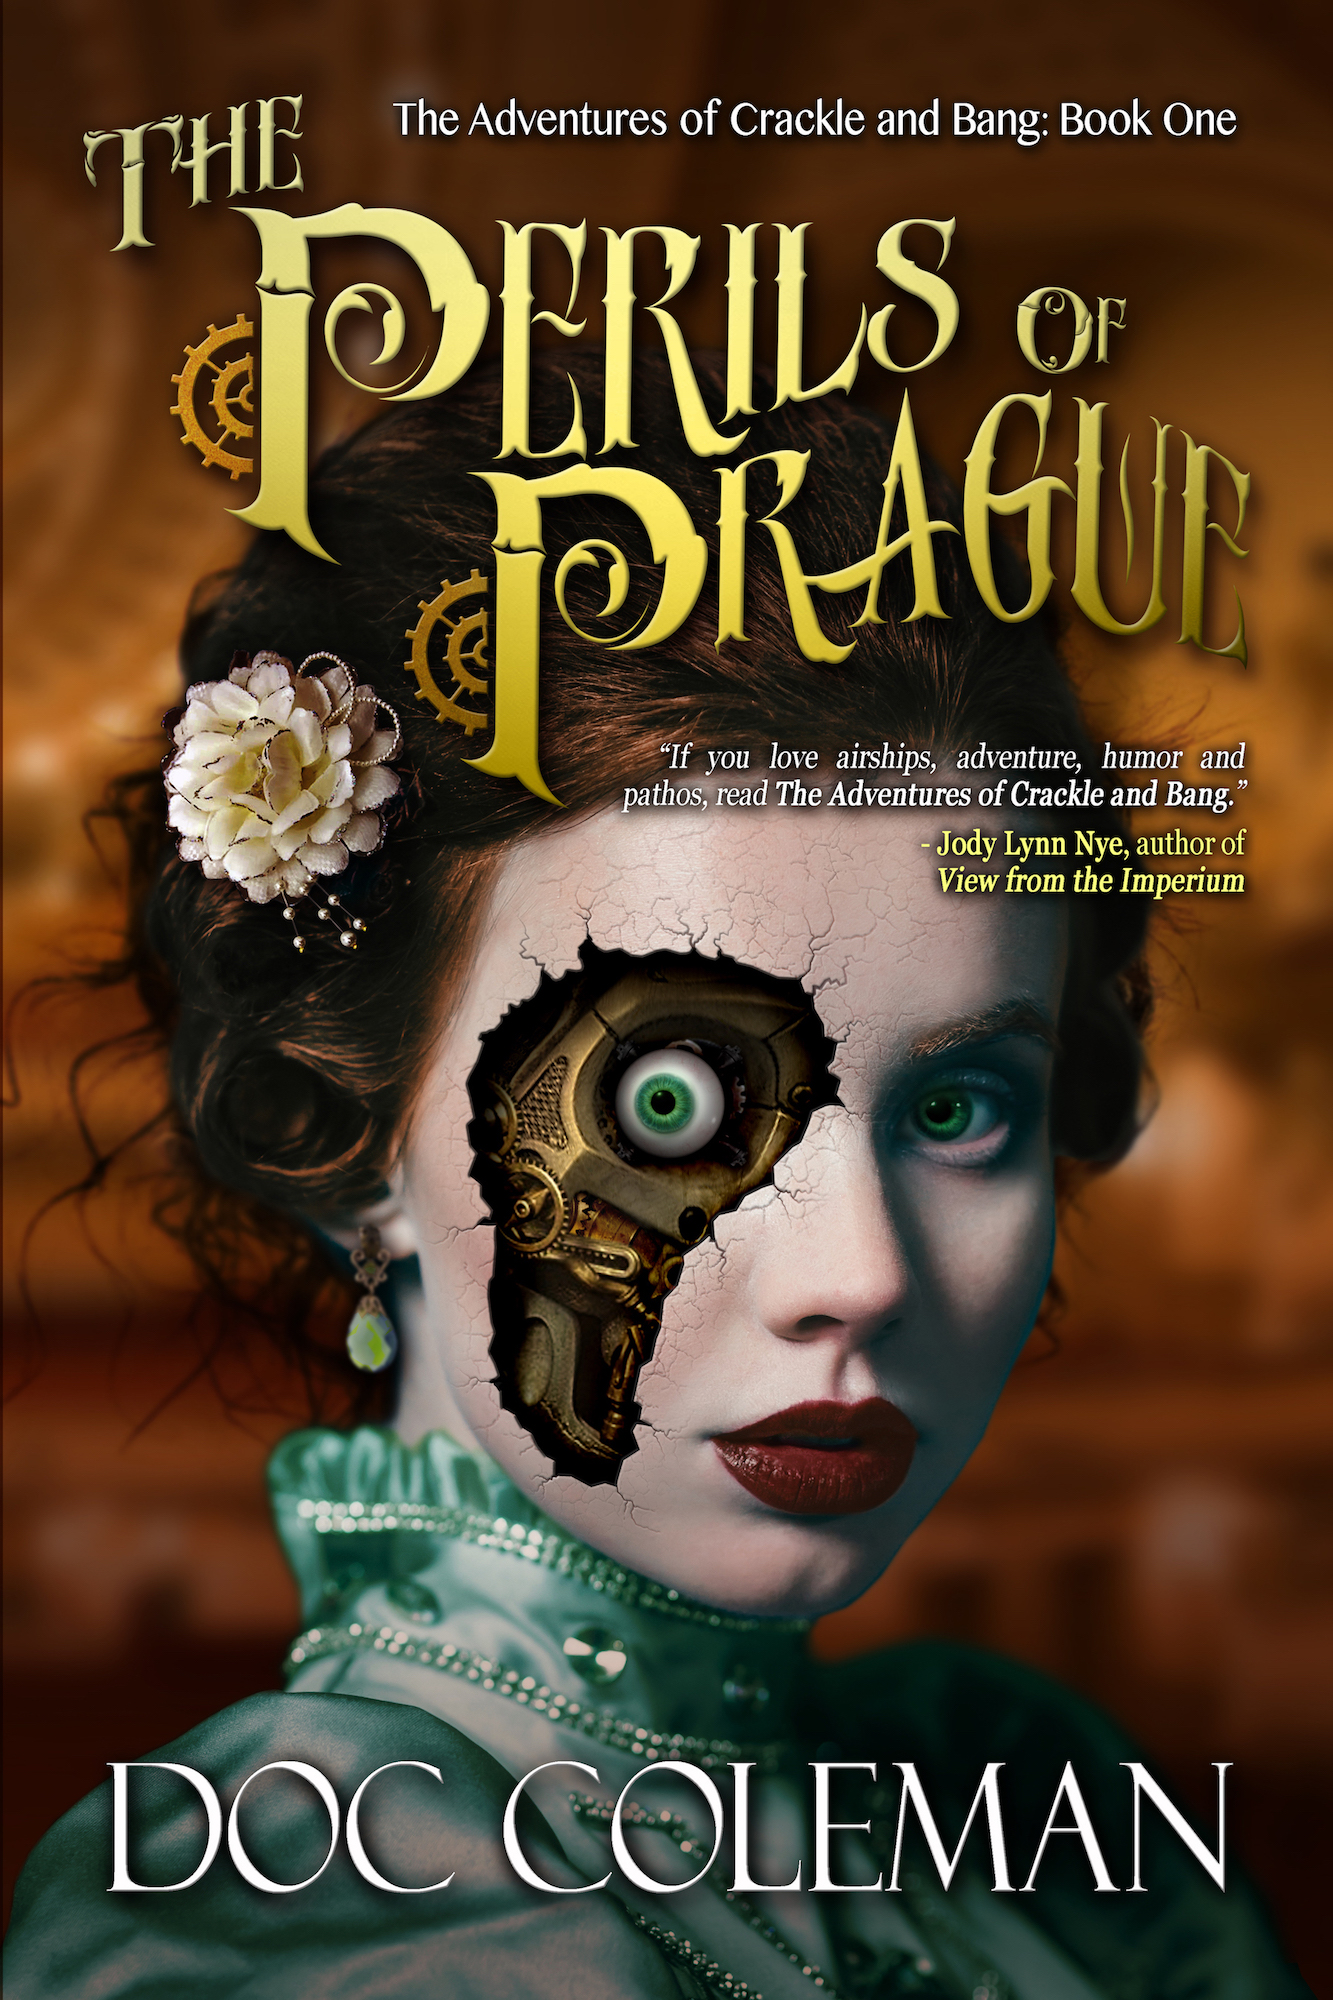 The Perils of Prague, The Adventures of Crackle & Bang, Book 1